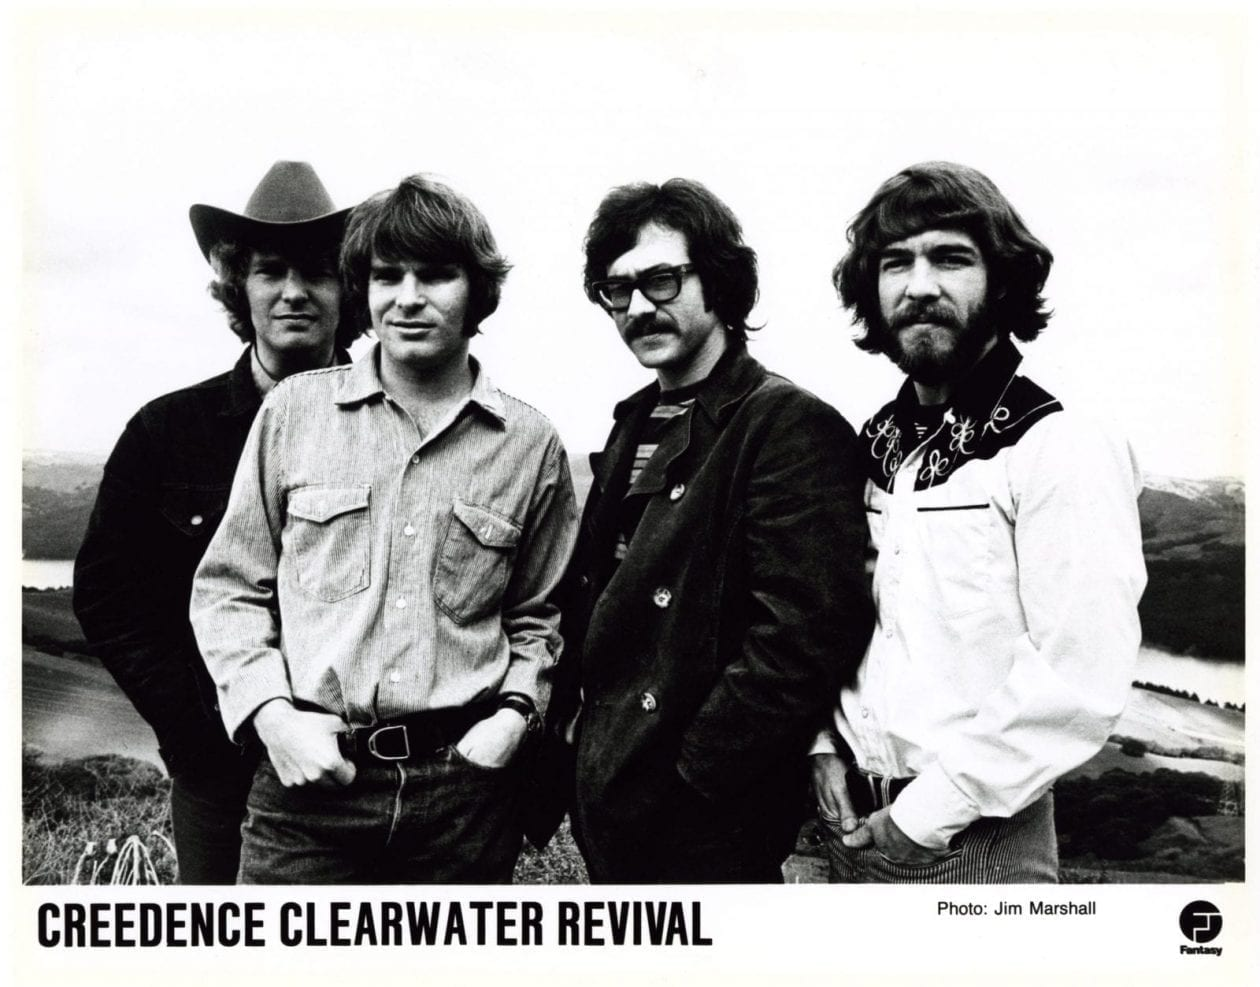 Creedence Clearwater Revival 50th Anniversary